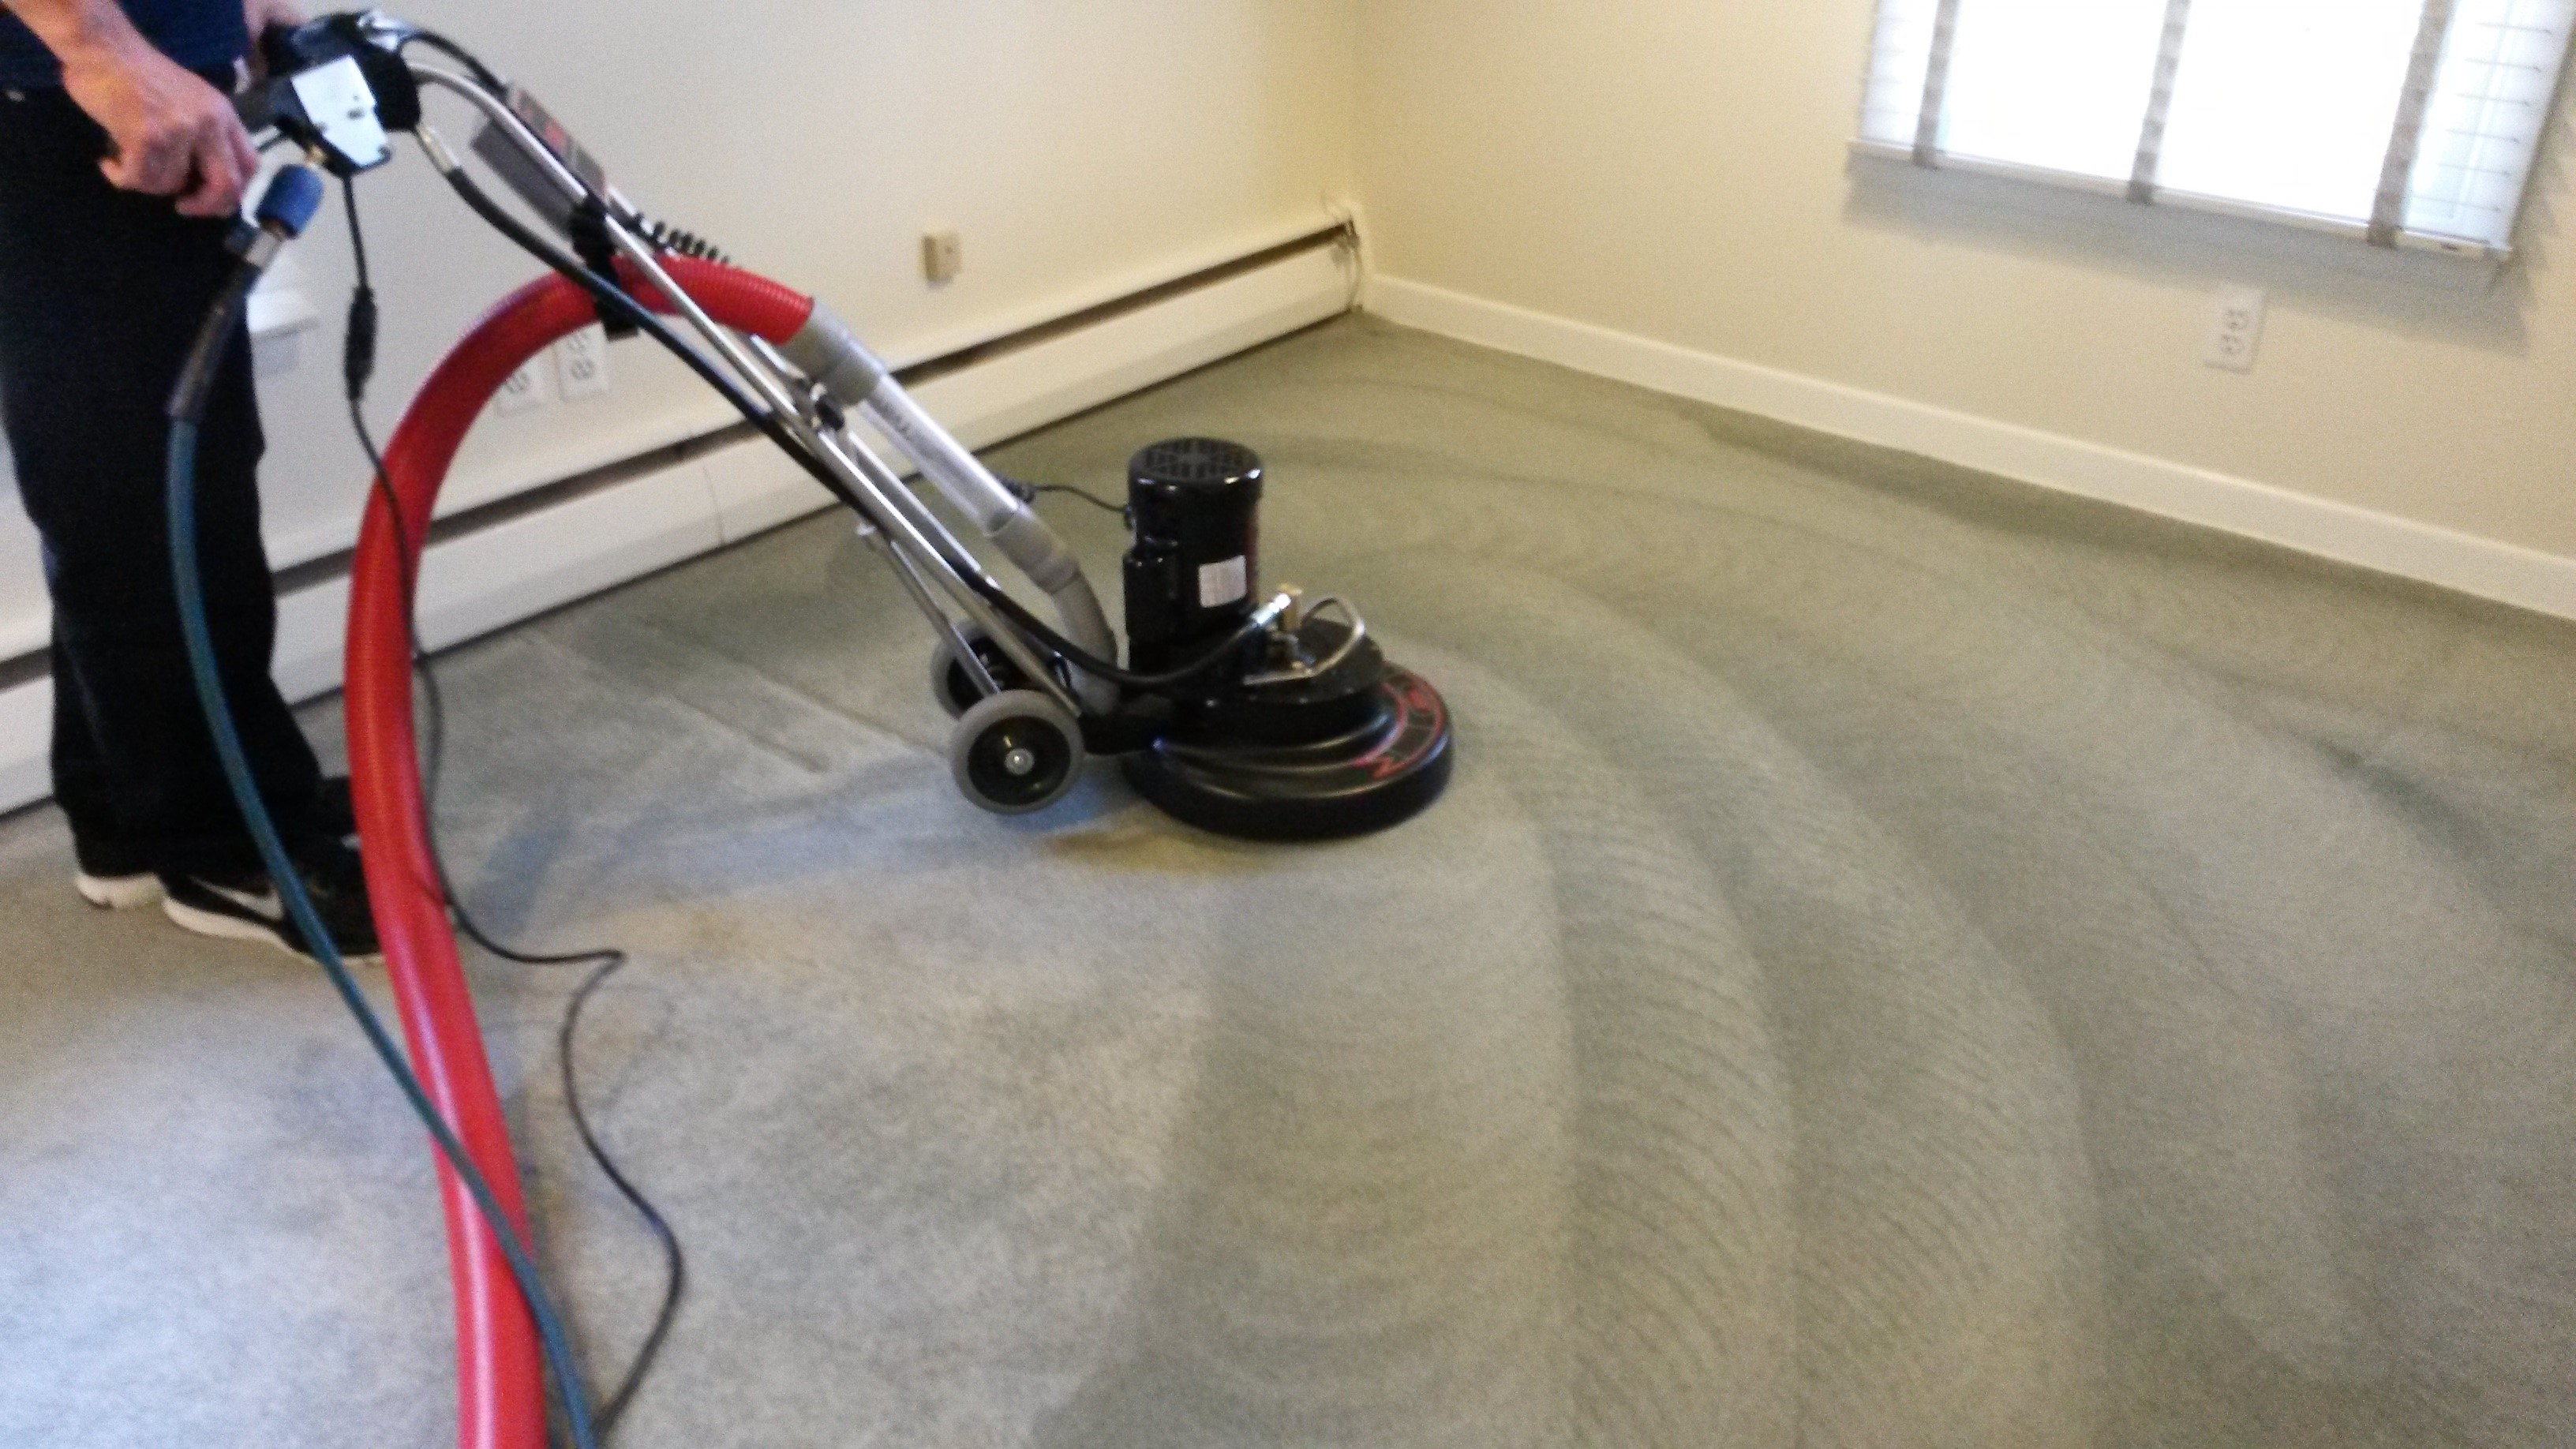 Carpet cleaning includes approaches pointed out